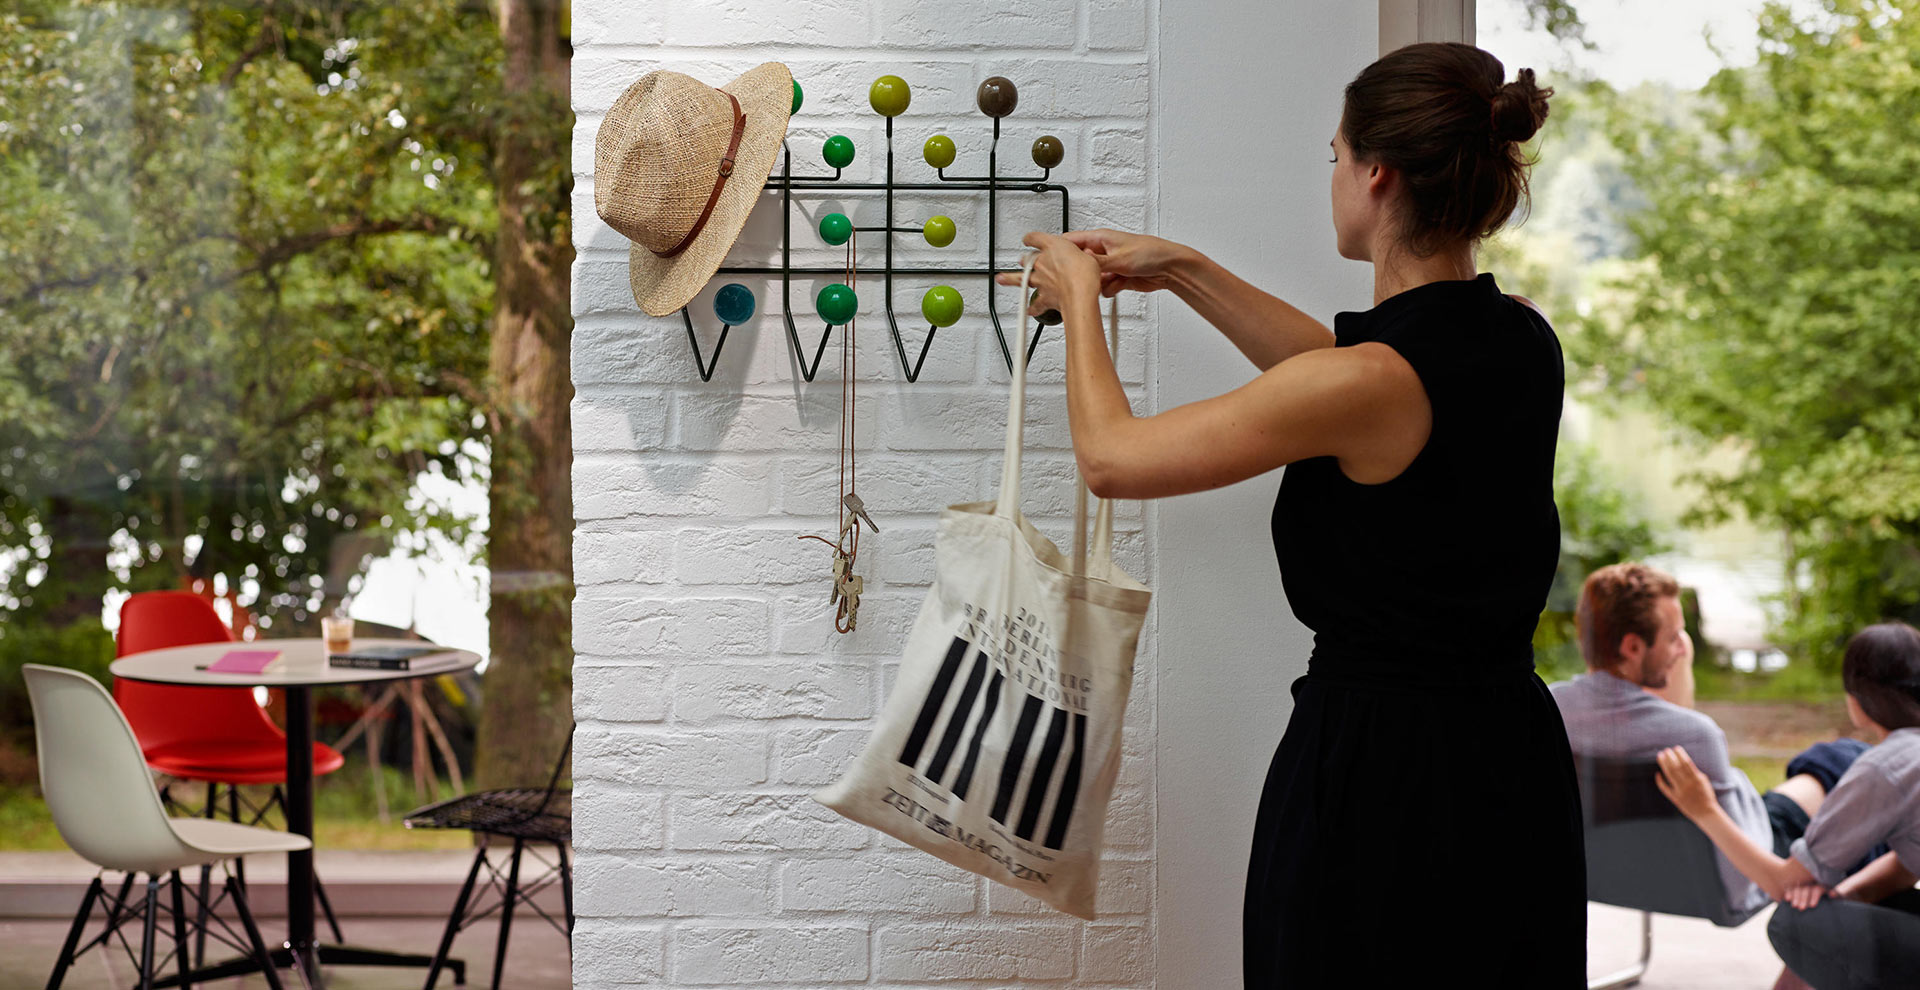 Hang it all Vitra